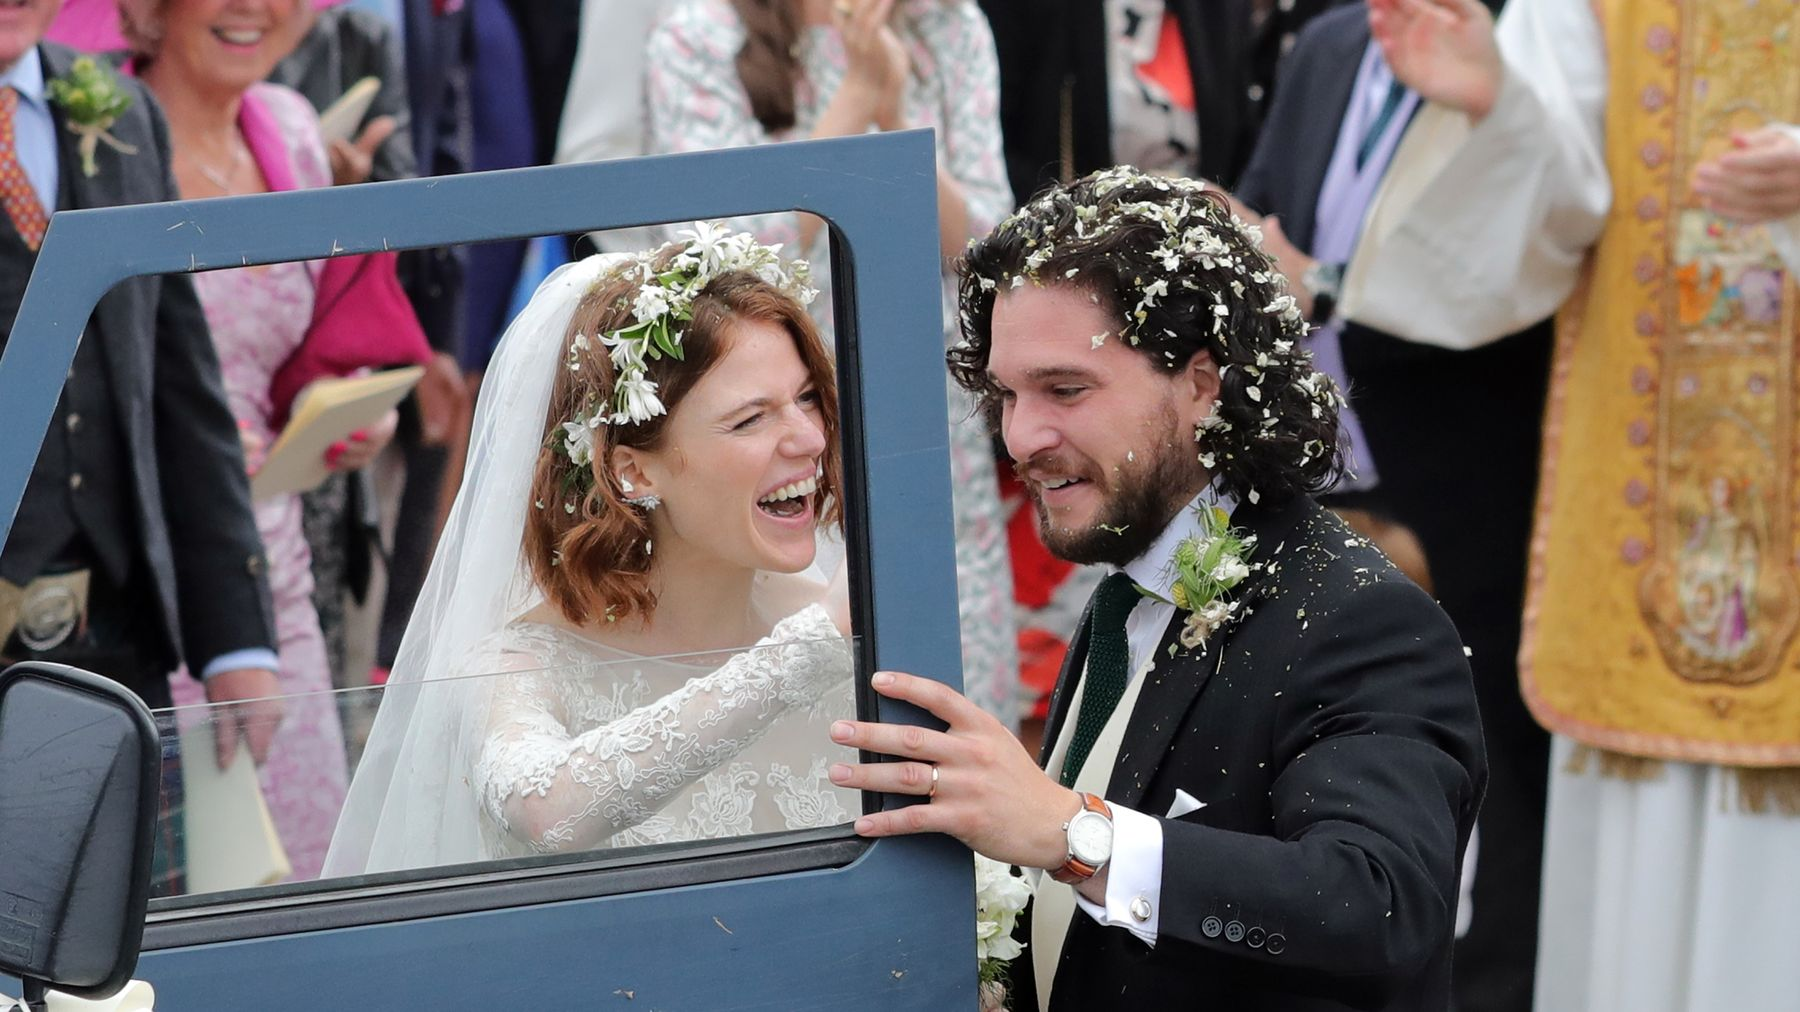 Kit Harington Wedding.Everything We Know About Kit Harington And Rose Leslie S Wedding